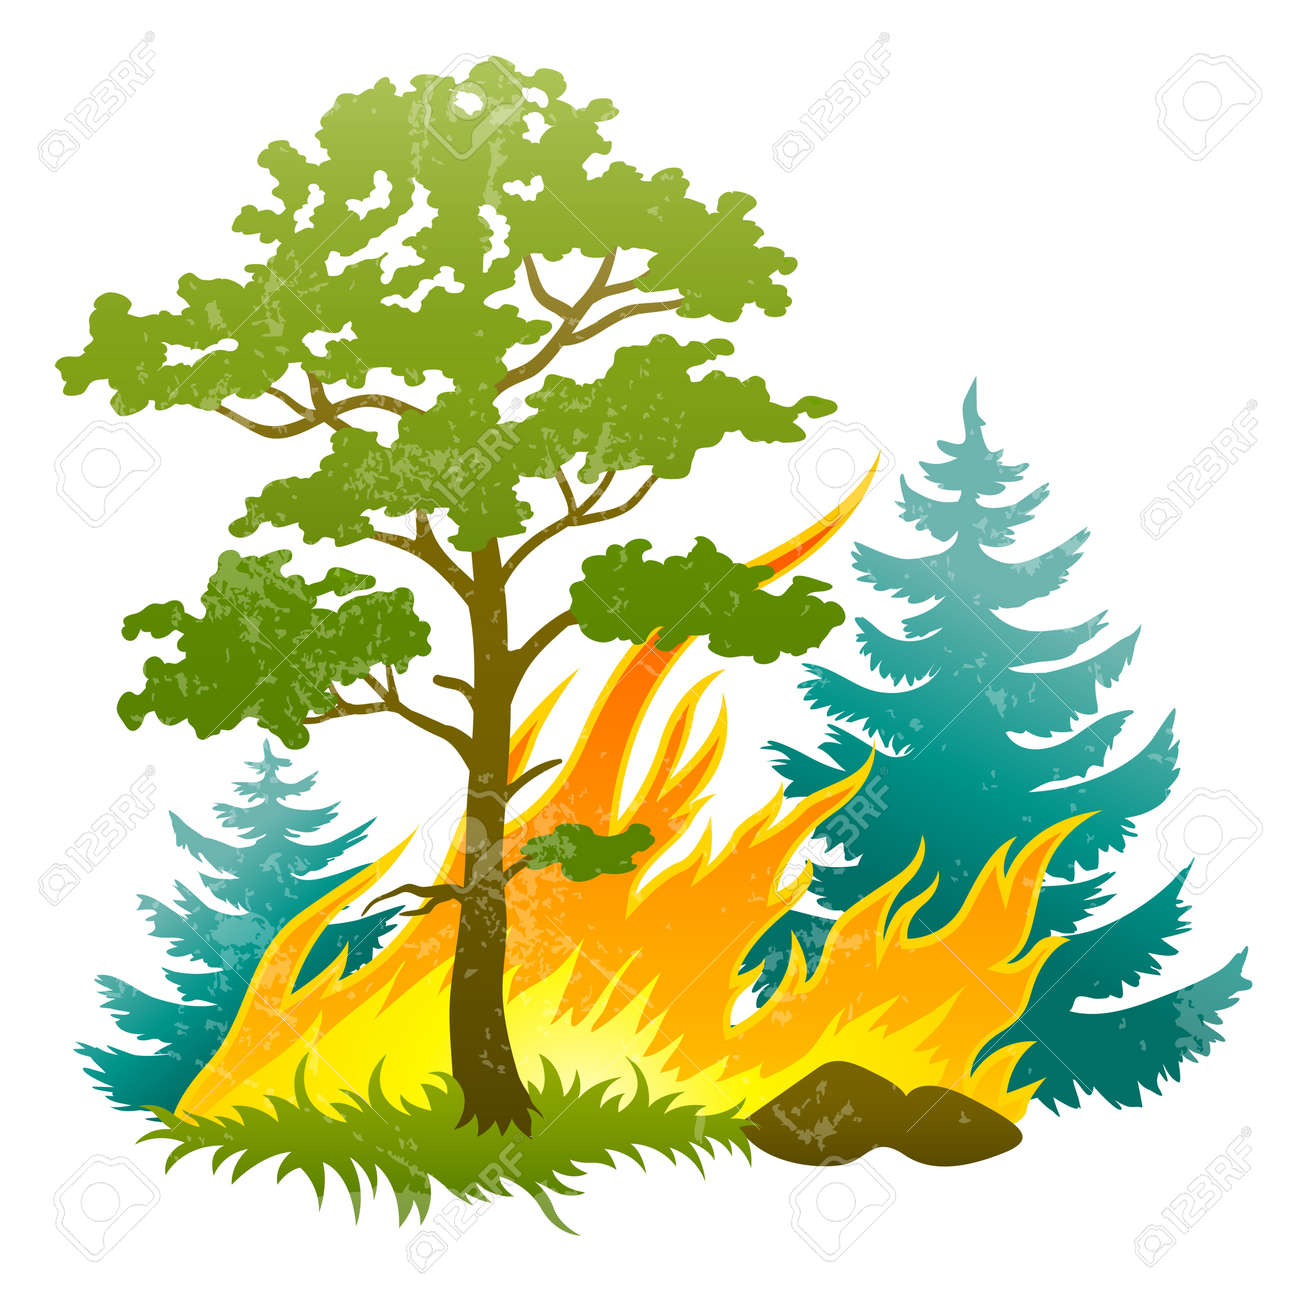 wildfire disaster with burning forest tree and fir trees. Transparent objects used for shadows and lights drawing Stock Vector - 12422392